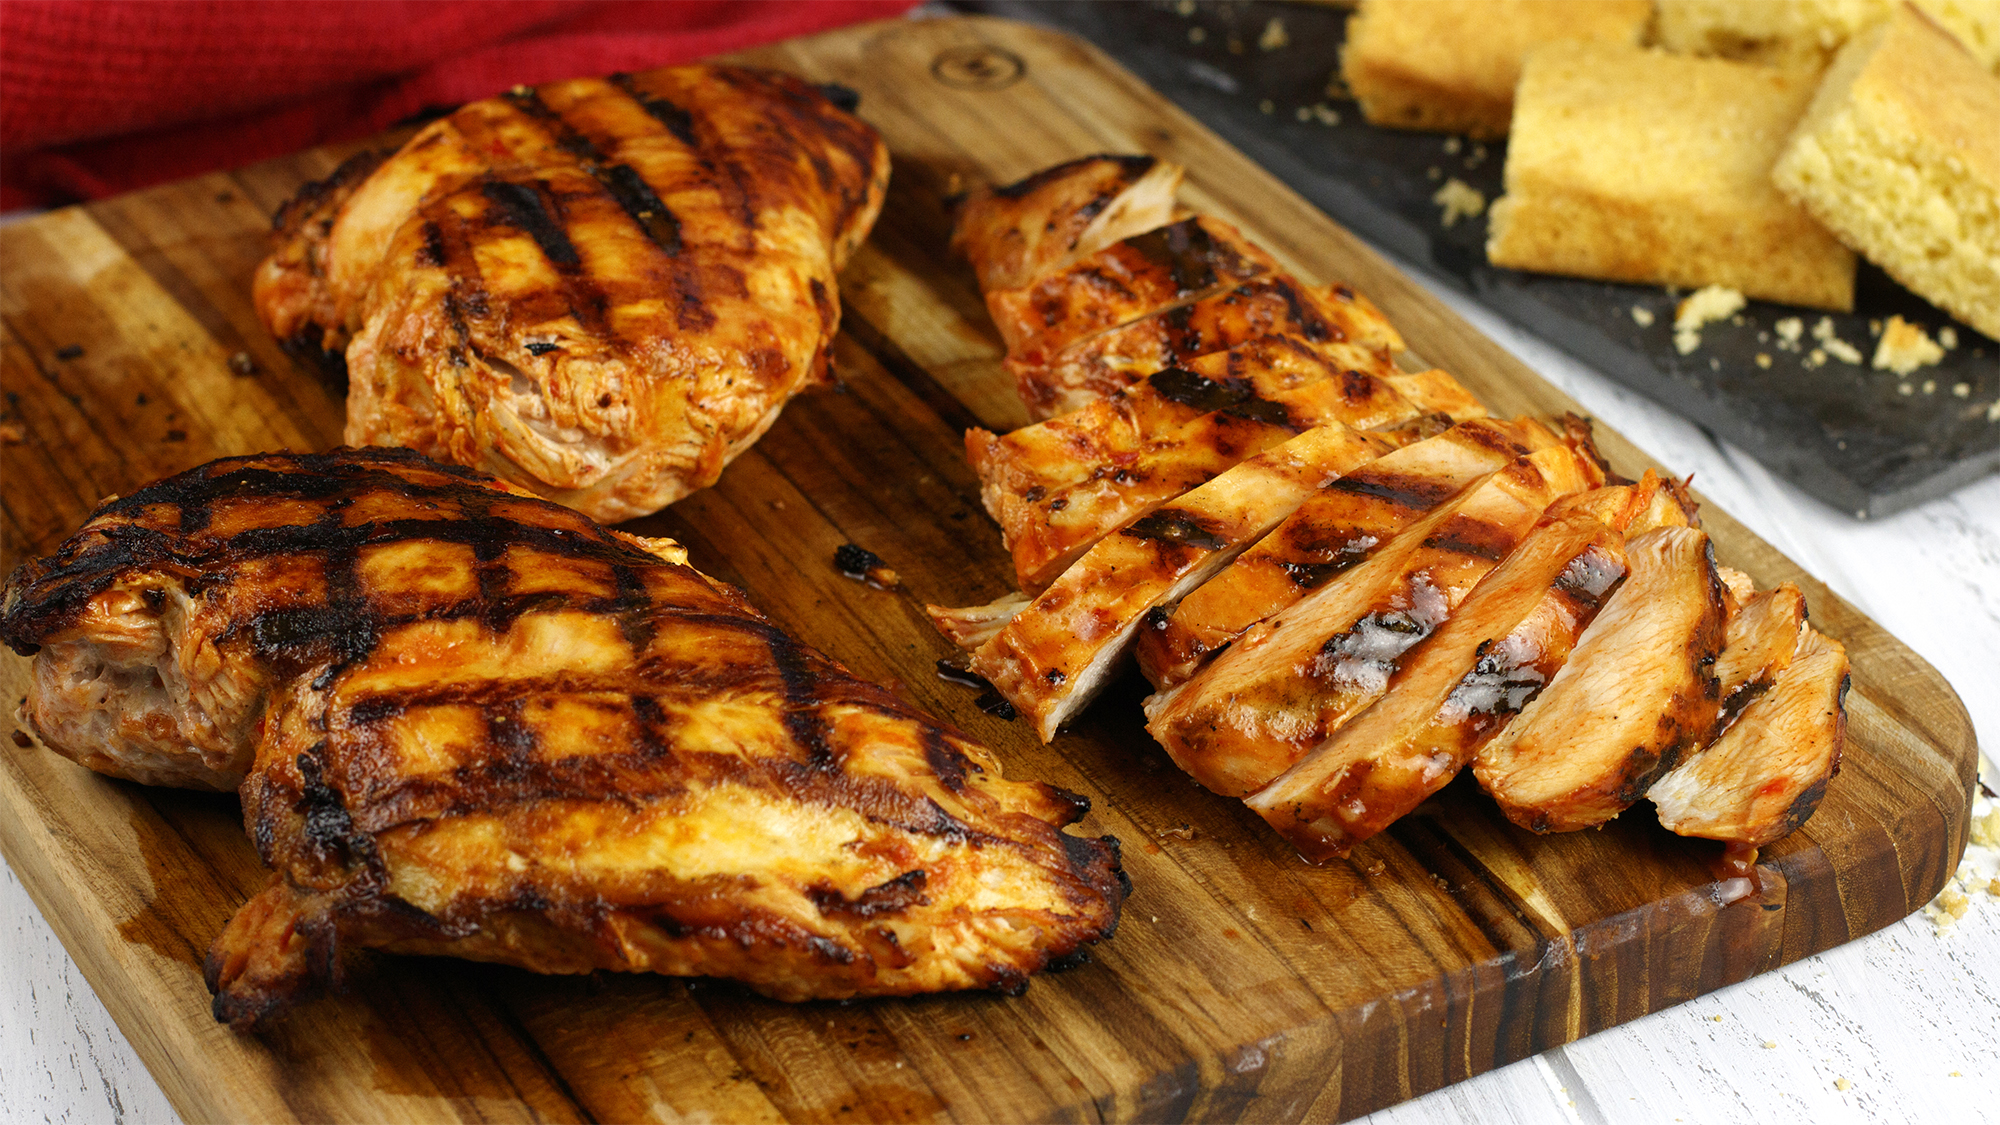 Cajun_Hot_Grilled_Chicken_1_2000X1125 (1).jpg